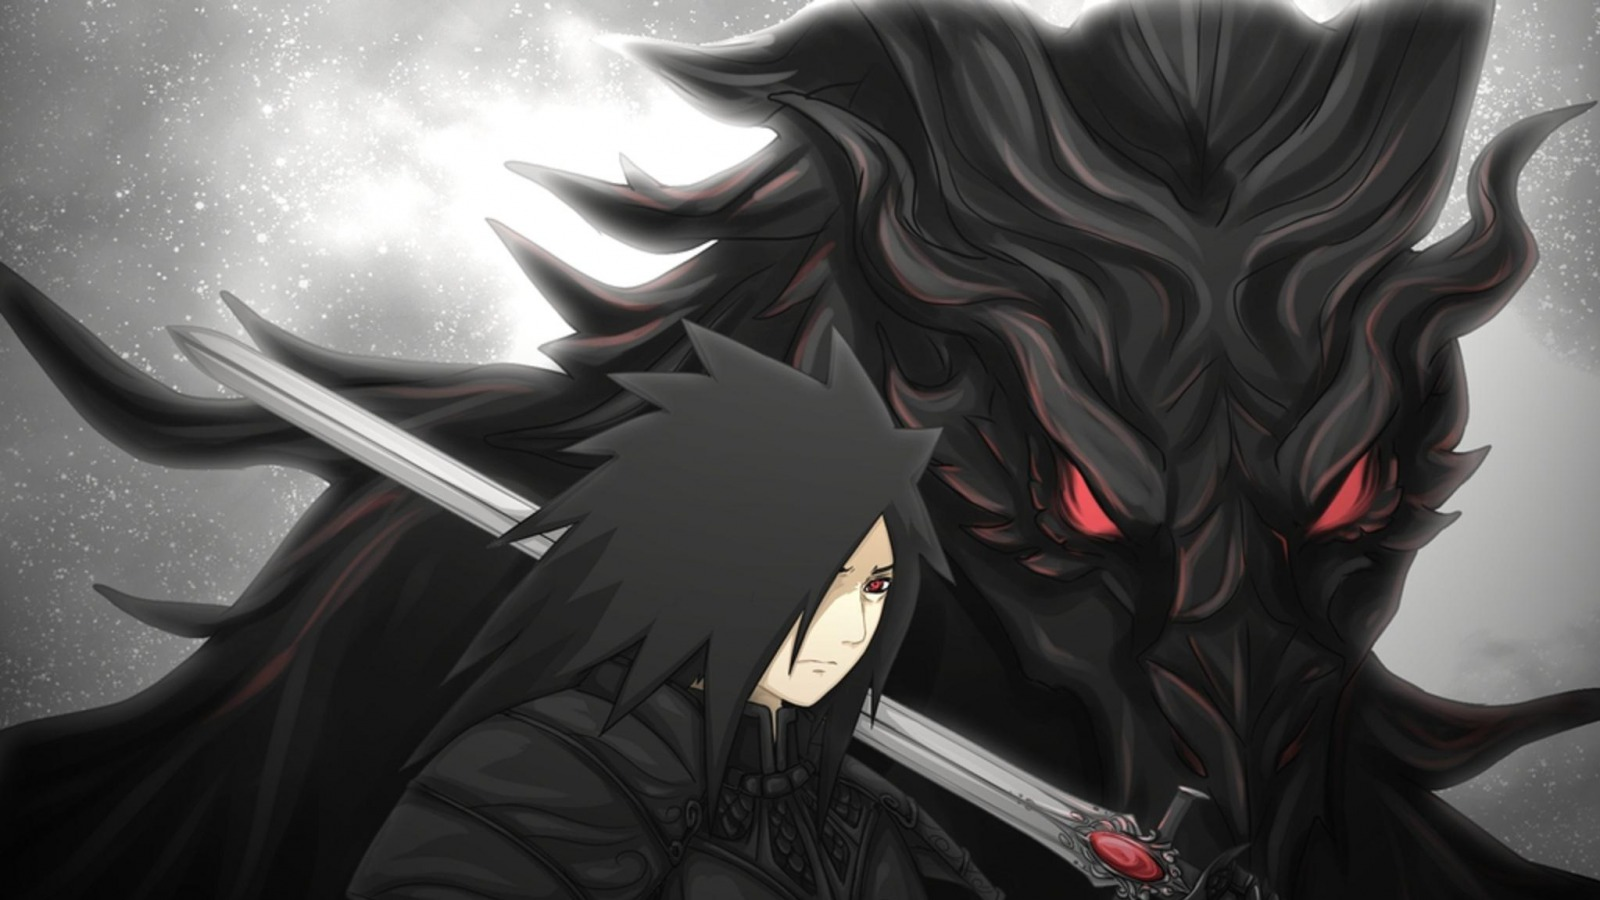 Madara Uchiha 18 Wallpapers Your daily Anime Wallpaper and Fan Art 1600x900